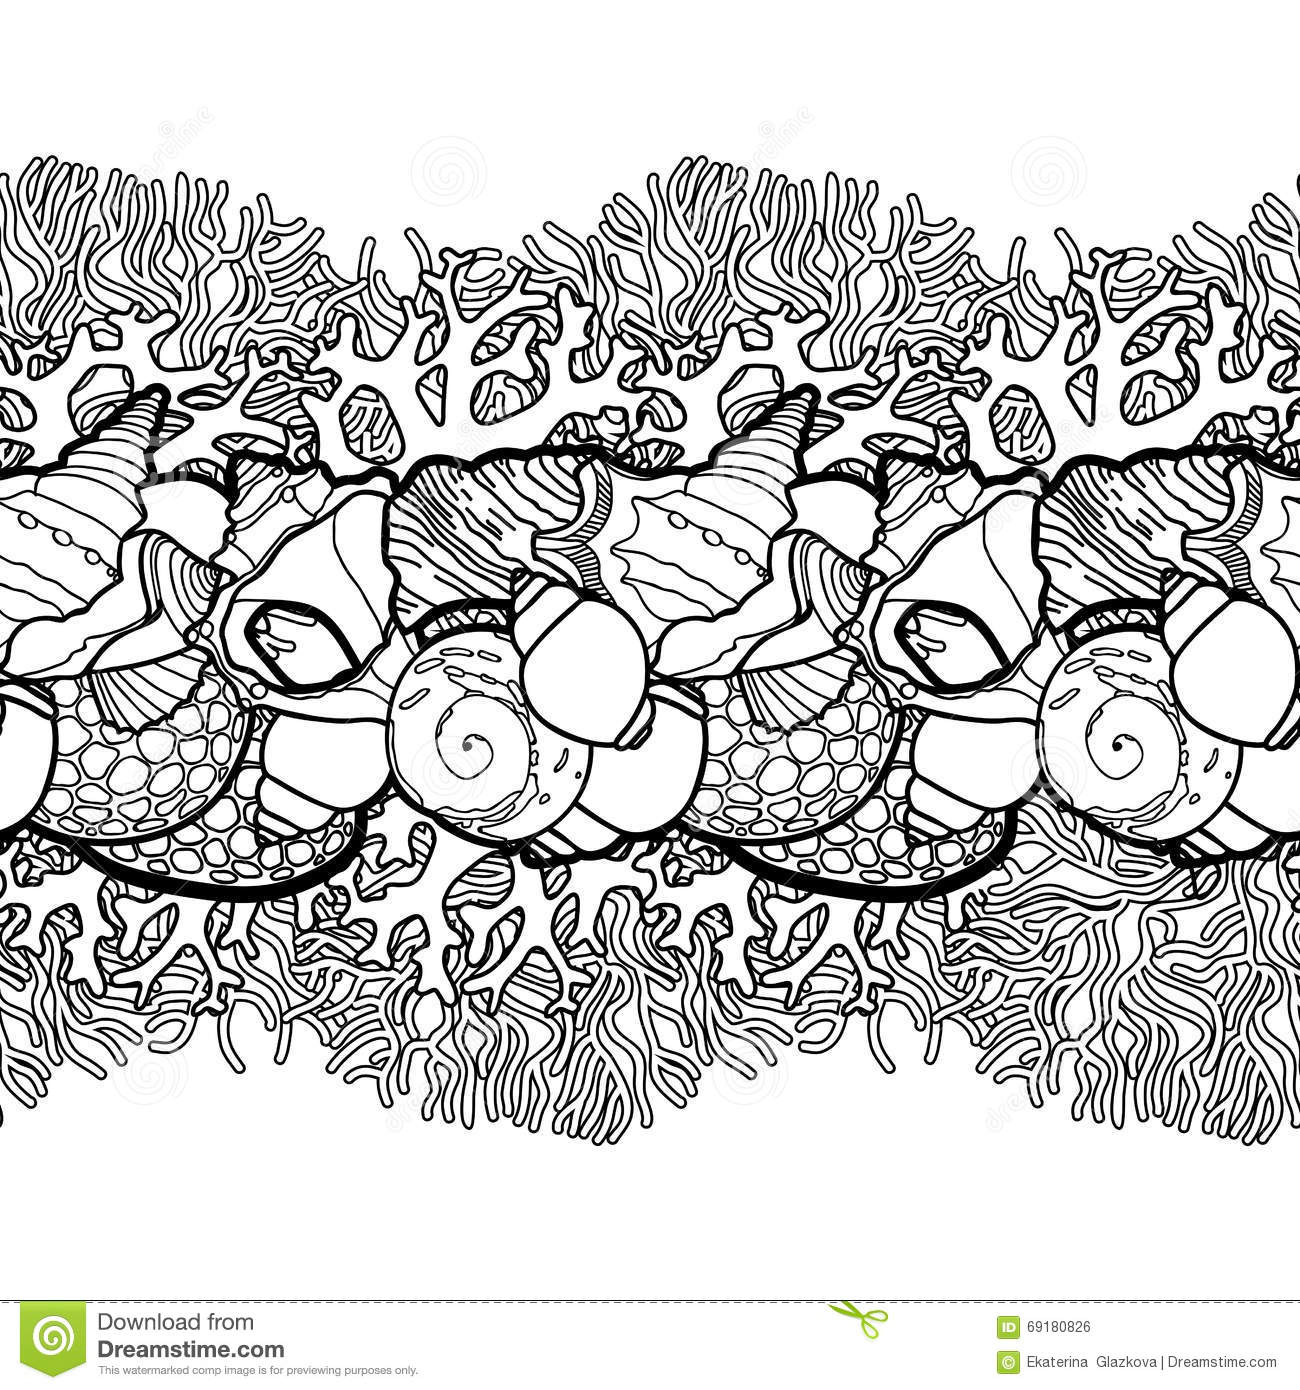 ocean backround coloring pages - photo #25